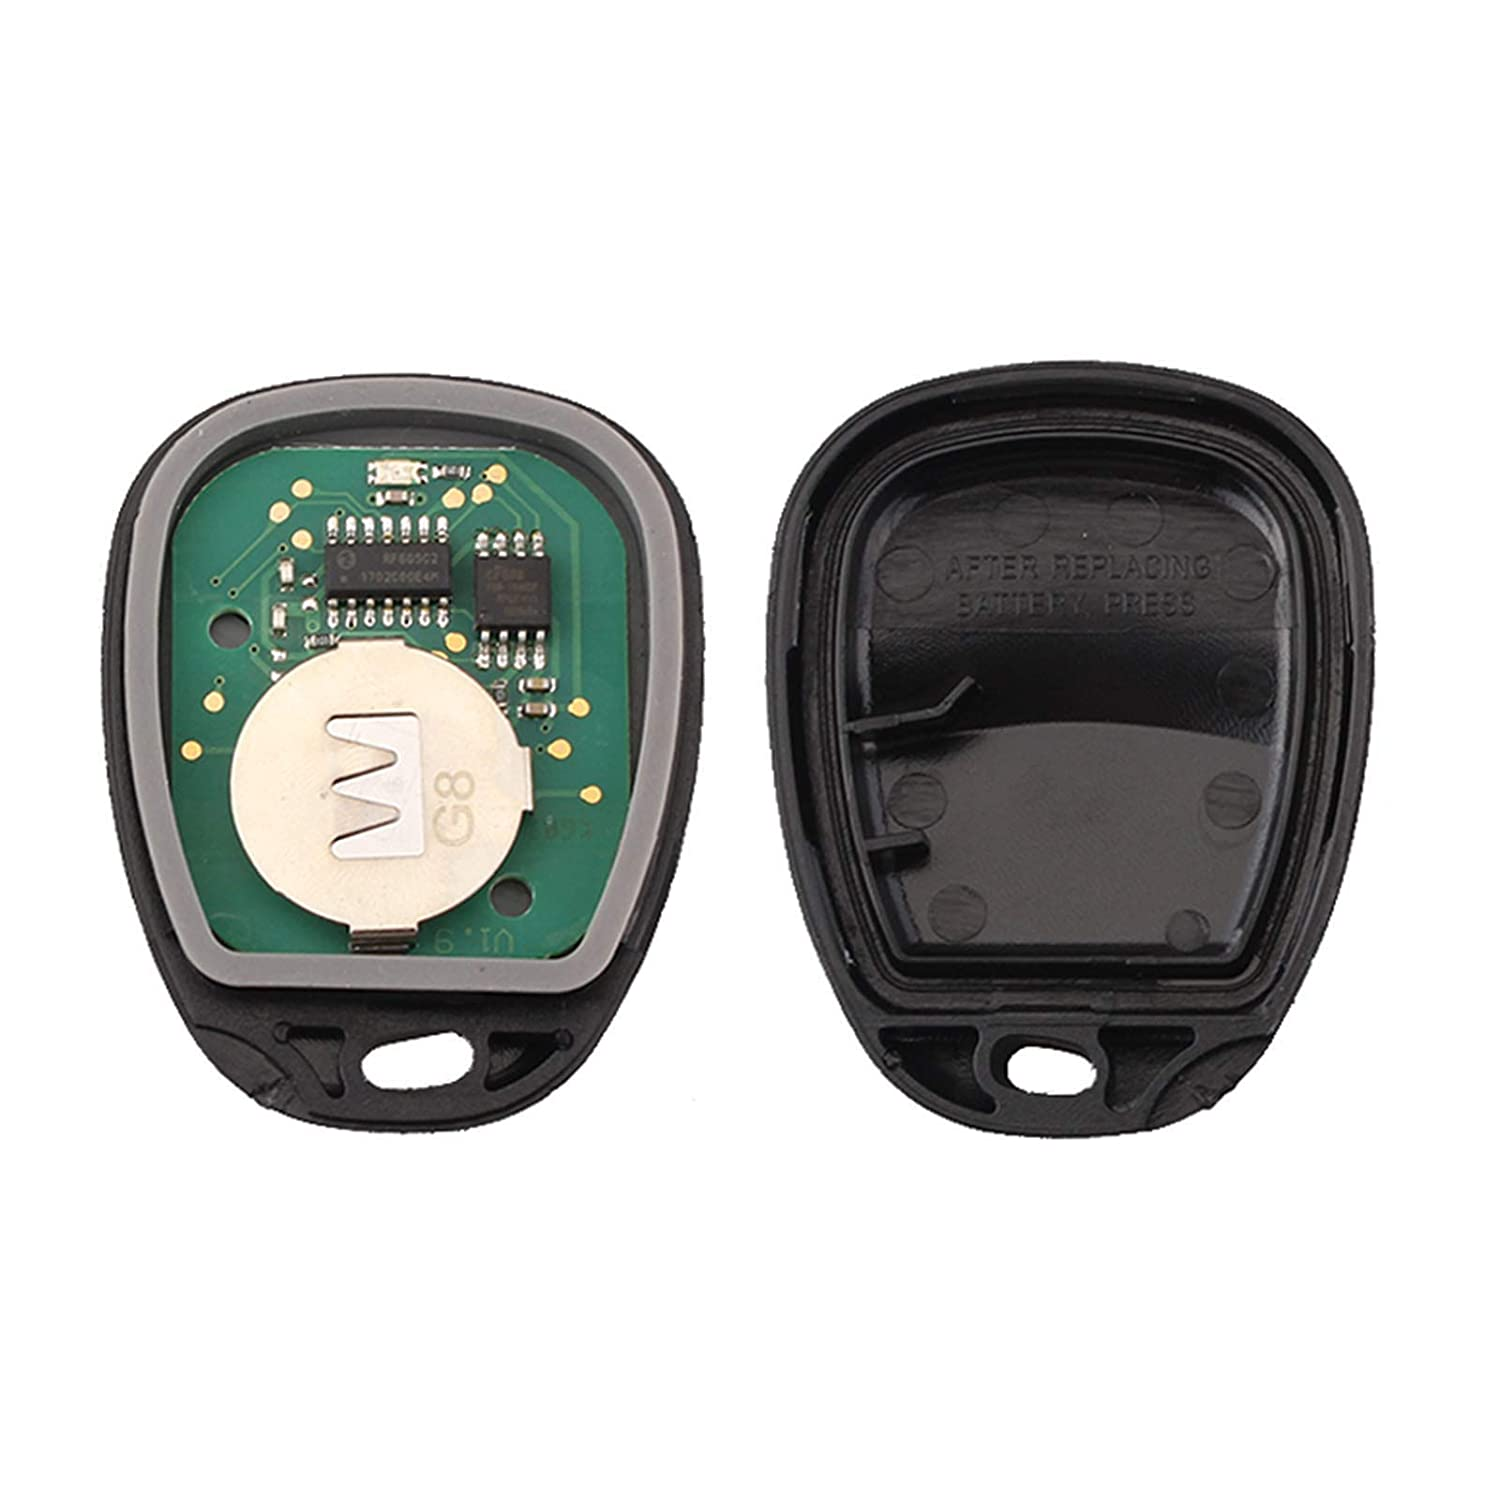 Replace# ABO1502T 16245100-29 Aupoko Keyless Remote Key Fob 4 Button 315 MHz Car Fob Keyless Entry Remote Key Compatible for Chevrolet GMC Cadillac Chevy Pontiac